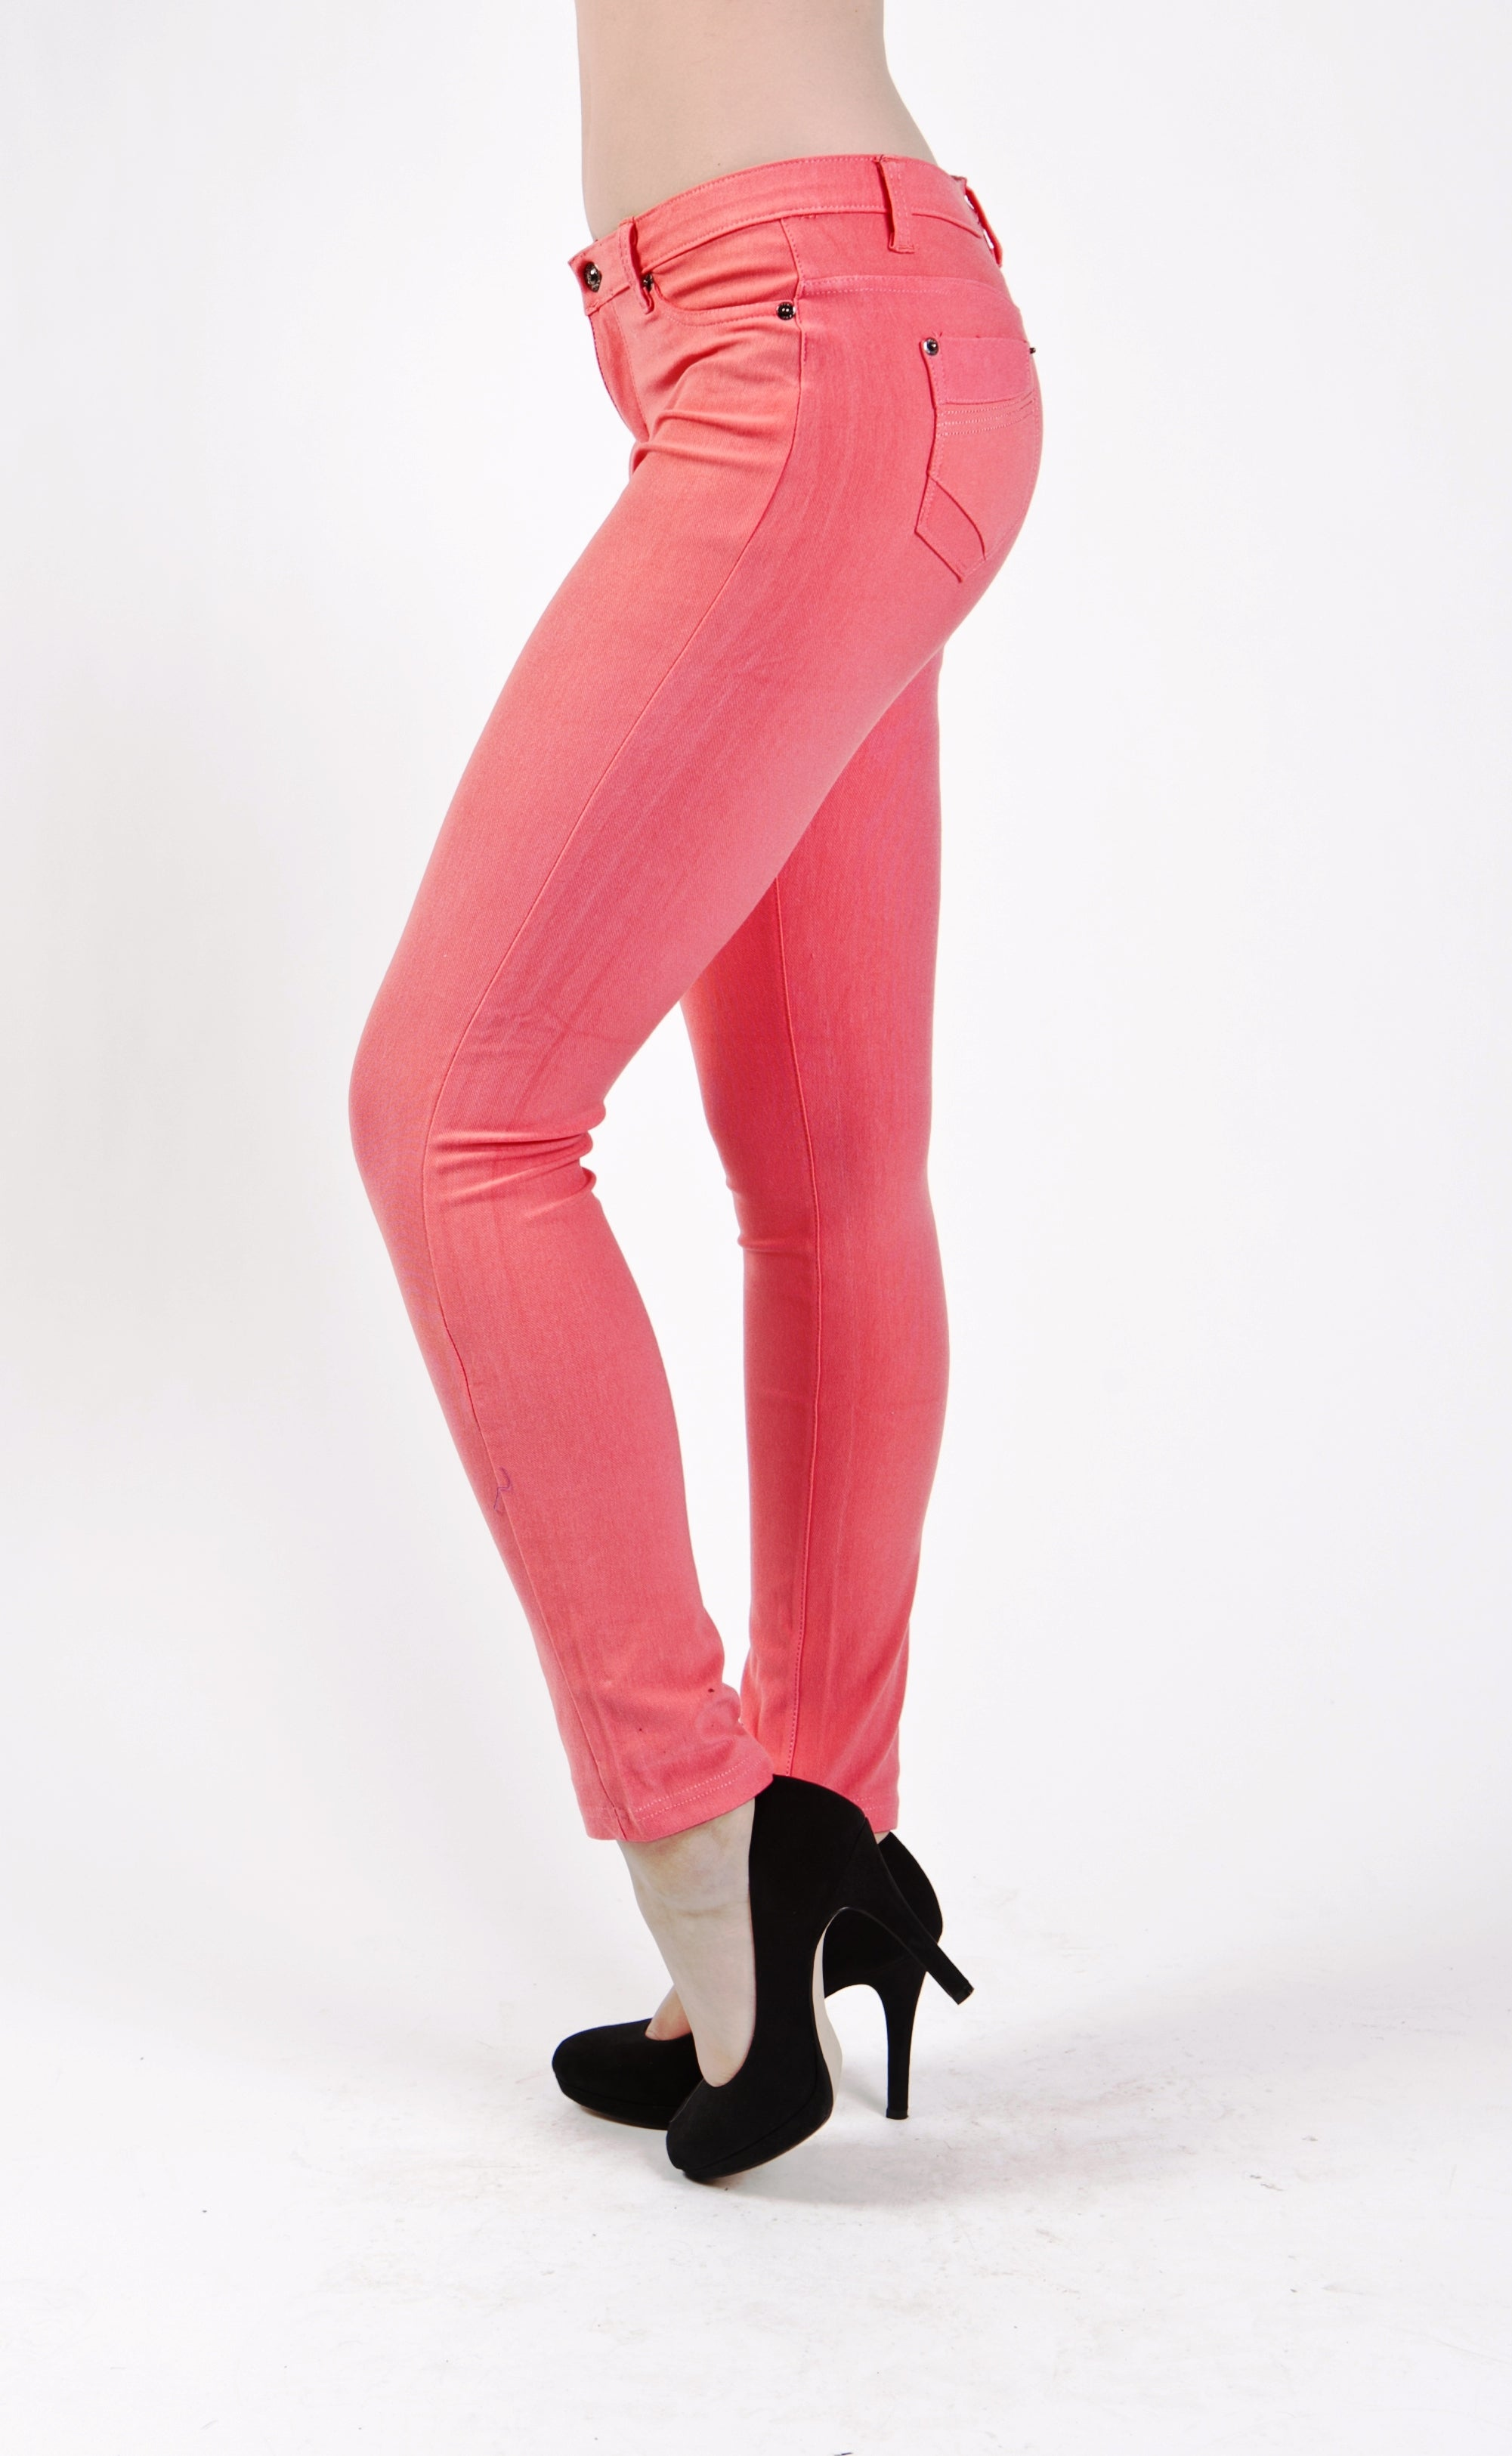 5 Pocket Slim Fit Skinny Pants-Peach - Home Goods Galore